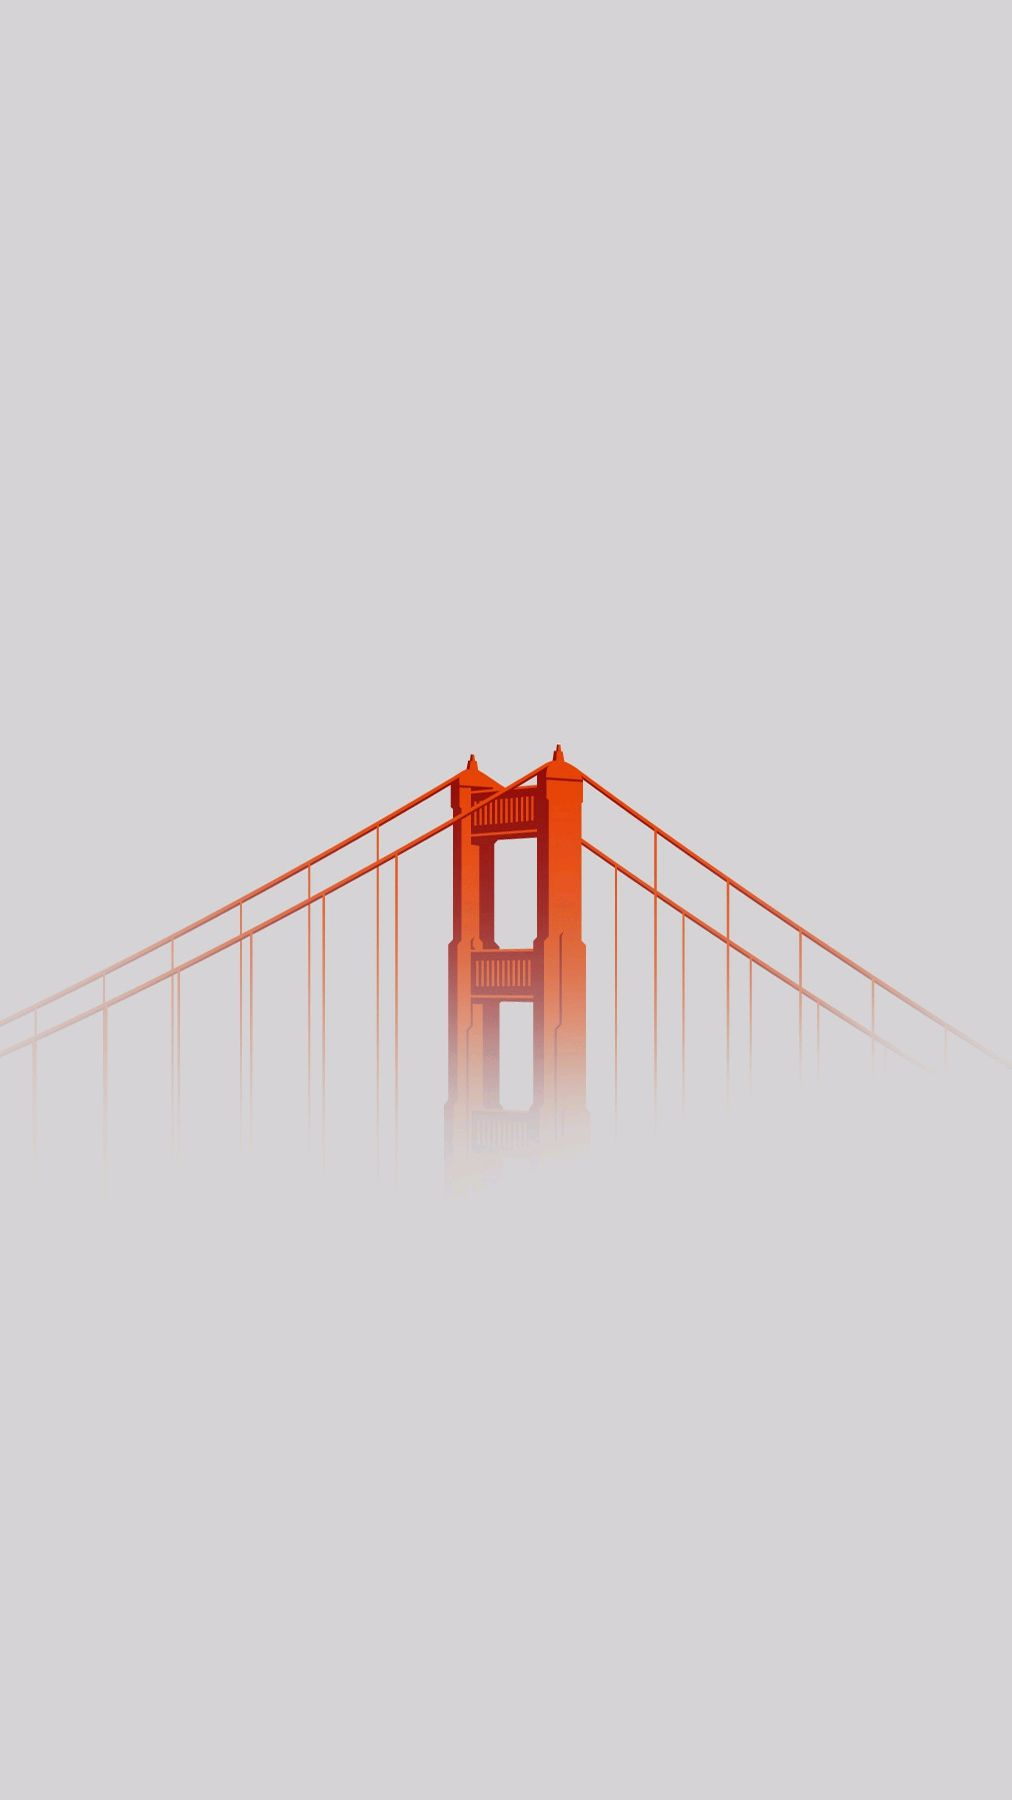 Minimal Golden Gate Bridge iPhone Wallpaper iphoneswallpapers com